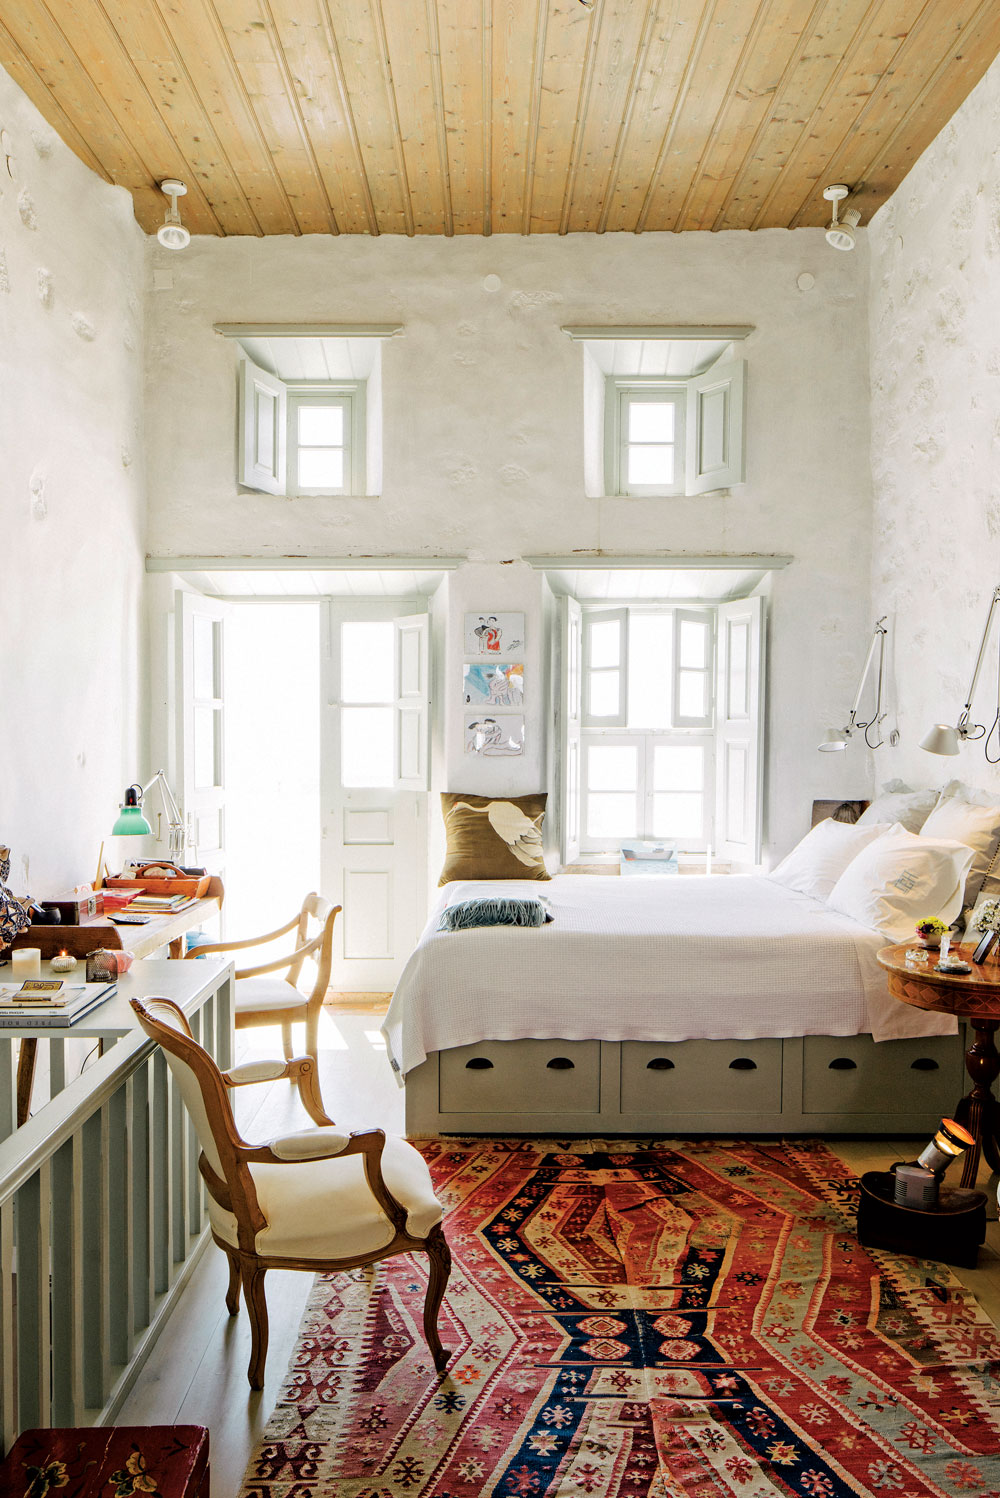 How to Turn Your House into a Mediterranean Retreat — Bloomberg Pursuits